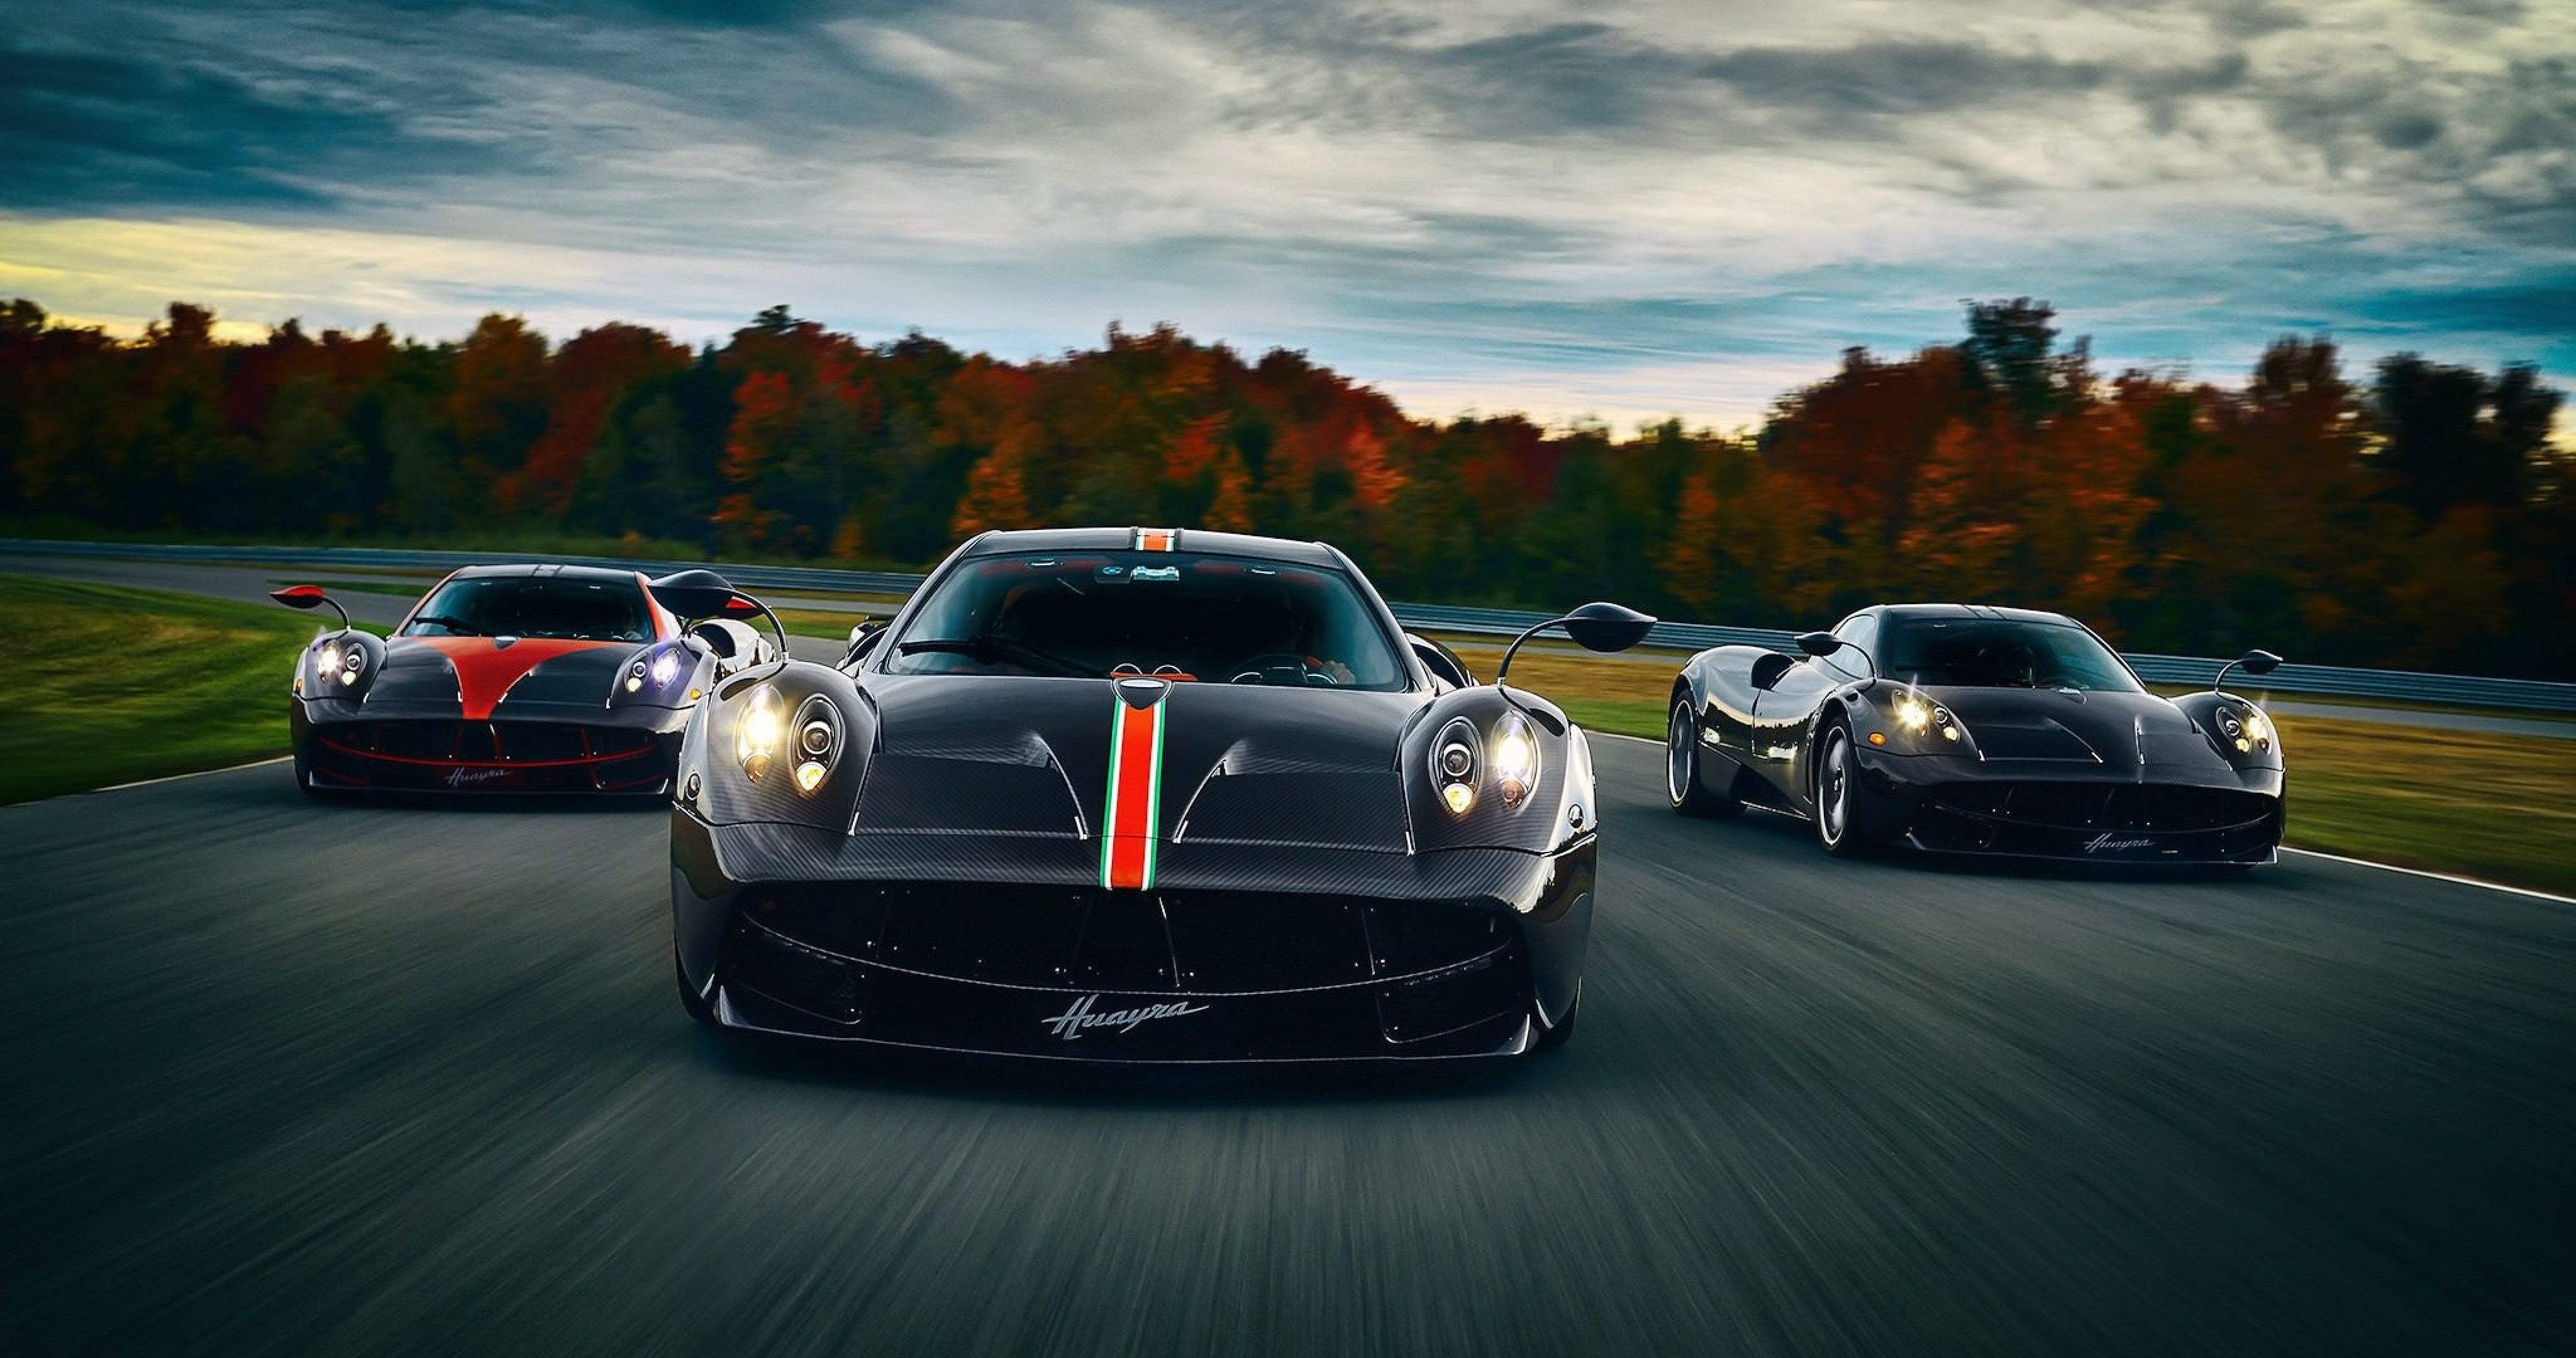 pagani huayra three cars wallpaper 4k ultra hd wallpaper  ololoshenka  Pinterest  Auto